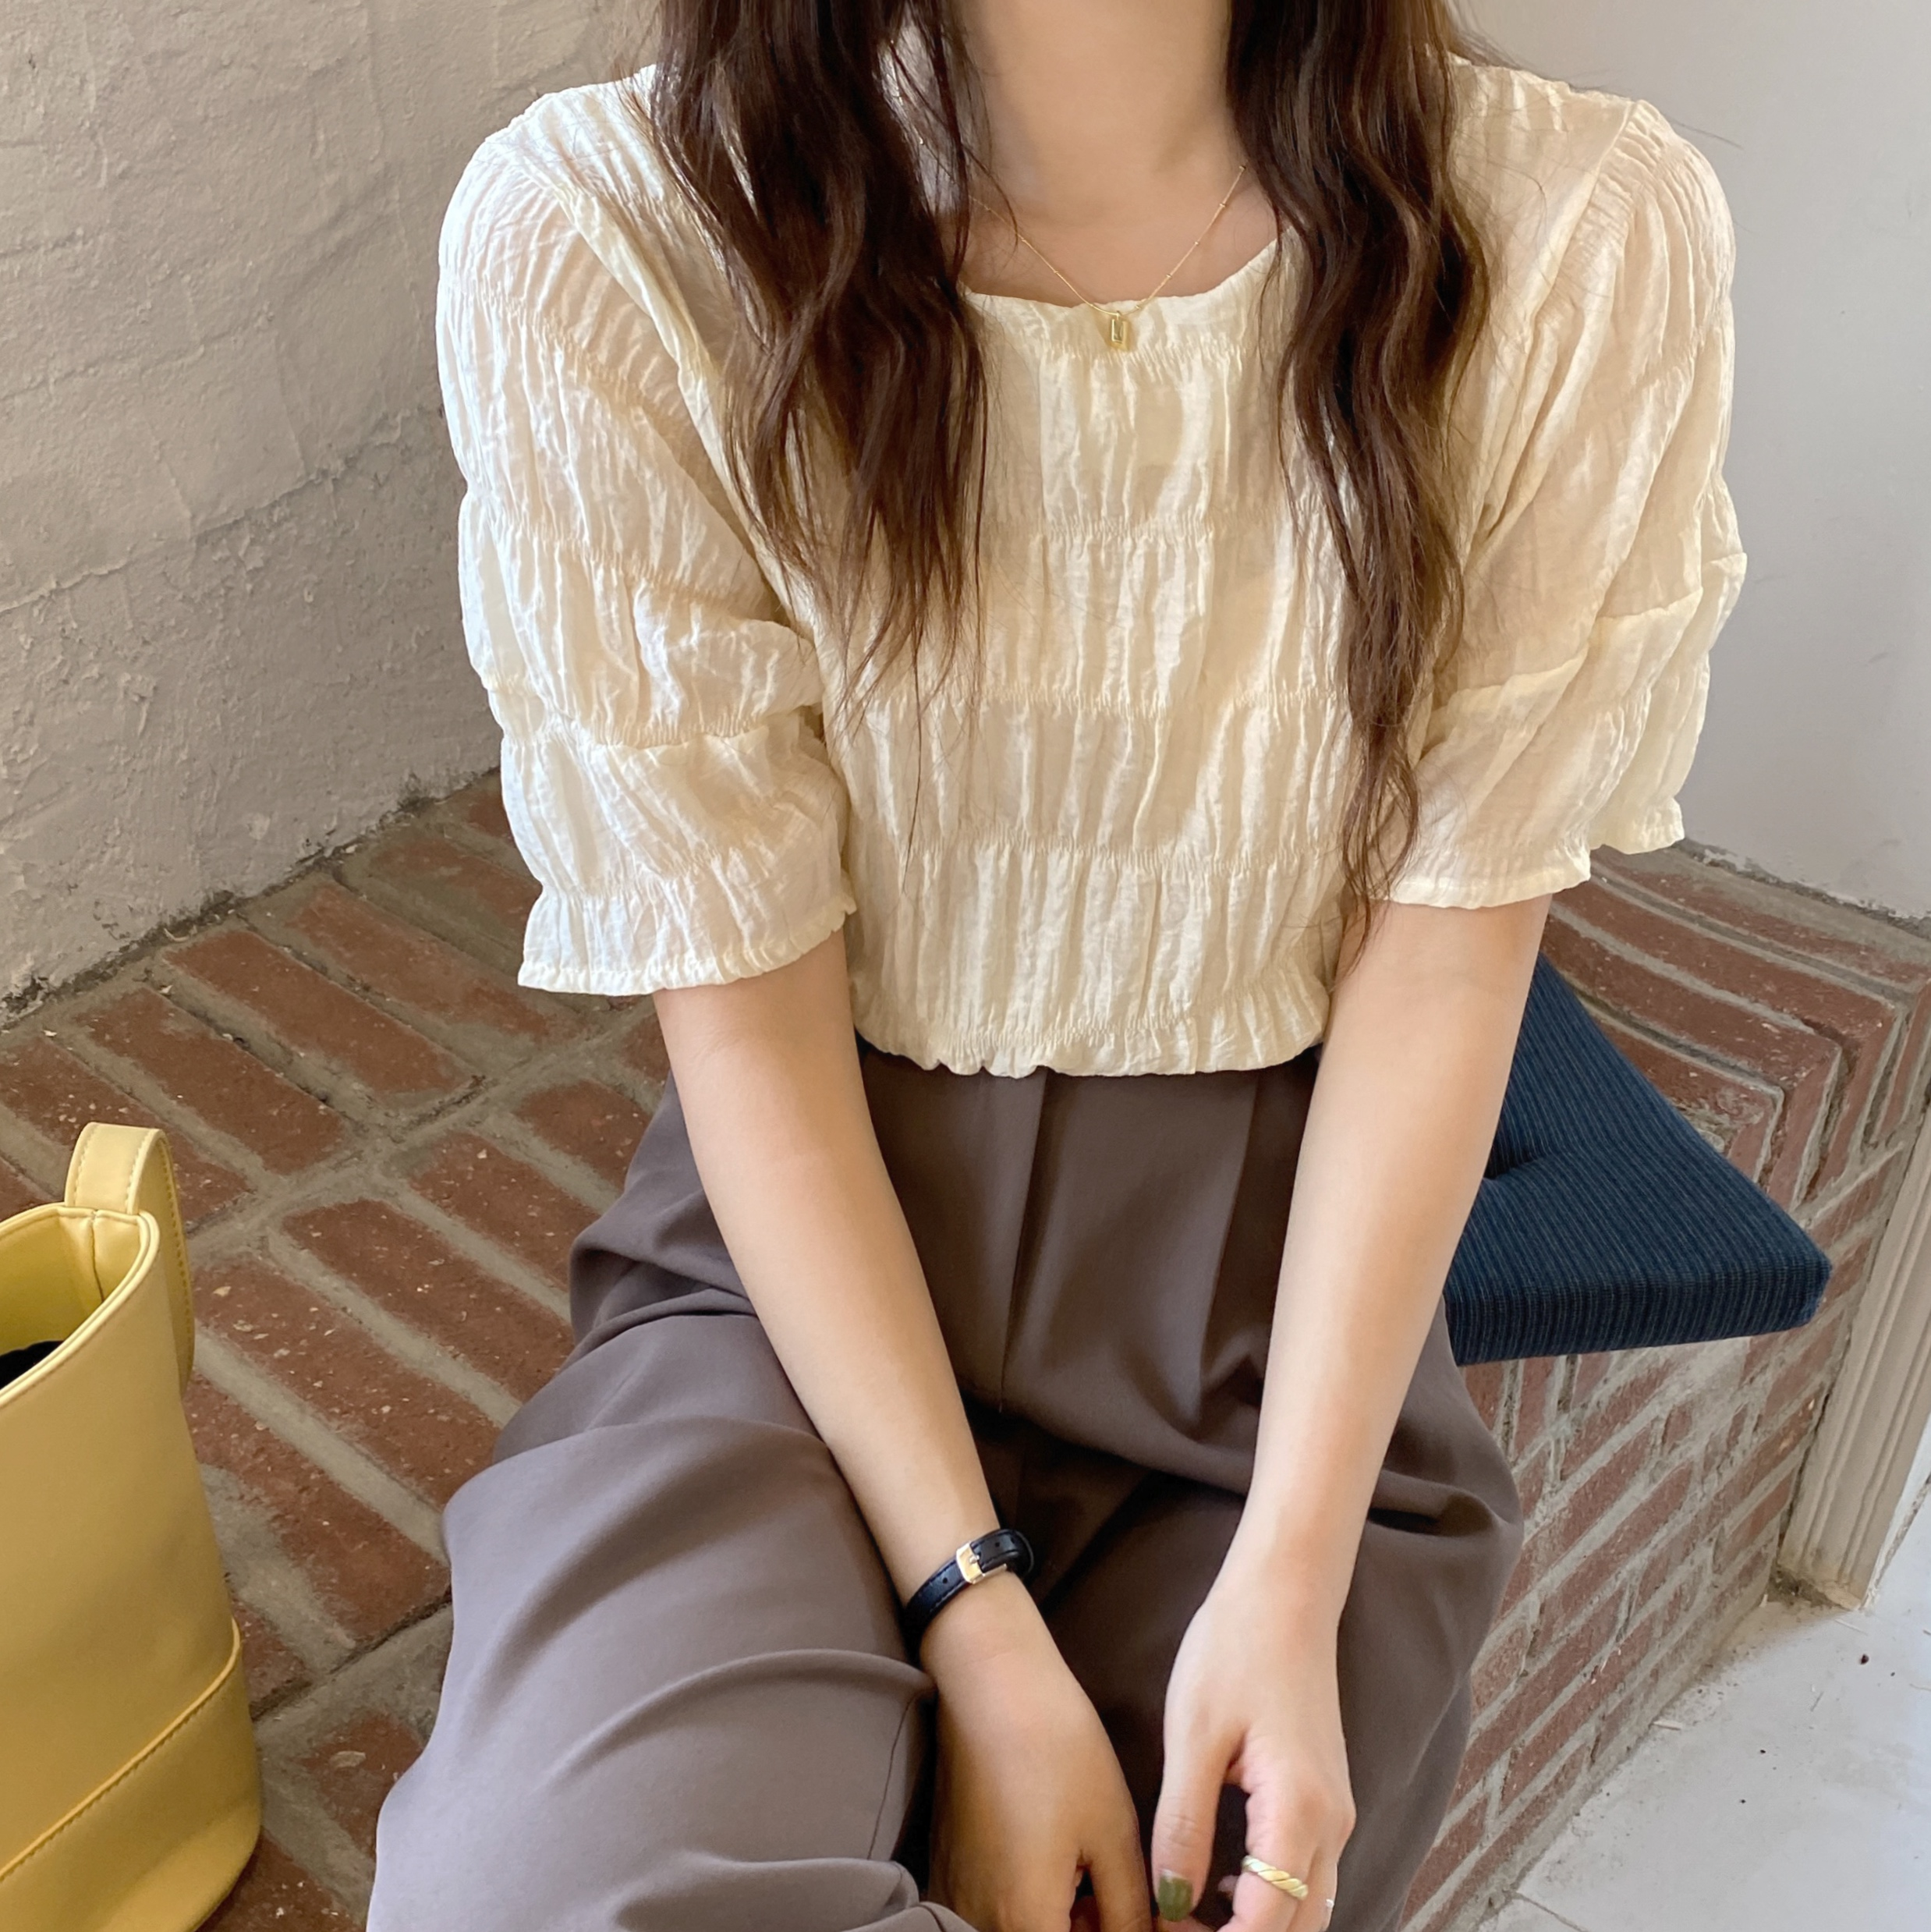 Hb904a33e163742a297da57d6272c7658h - Summer O-Neck Short Sleeves Minimalist Pleated Solid Blouse